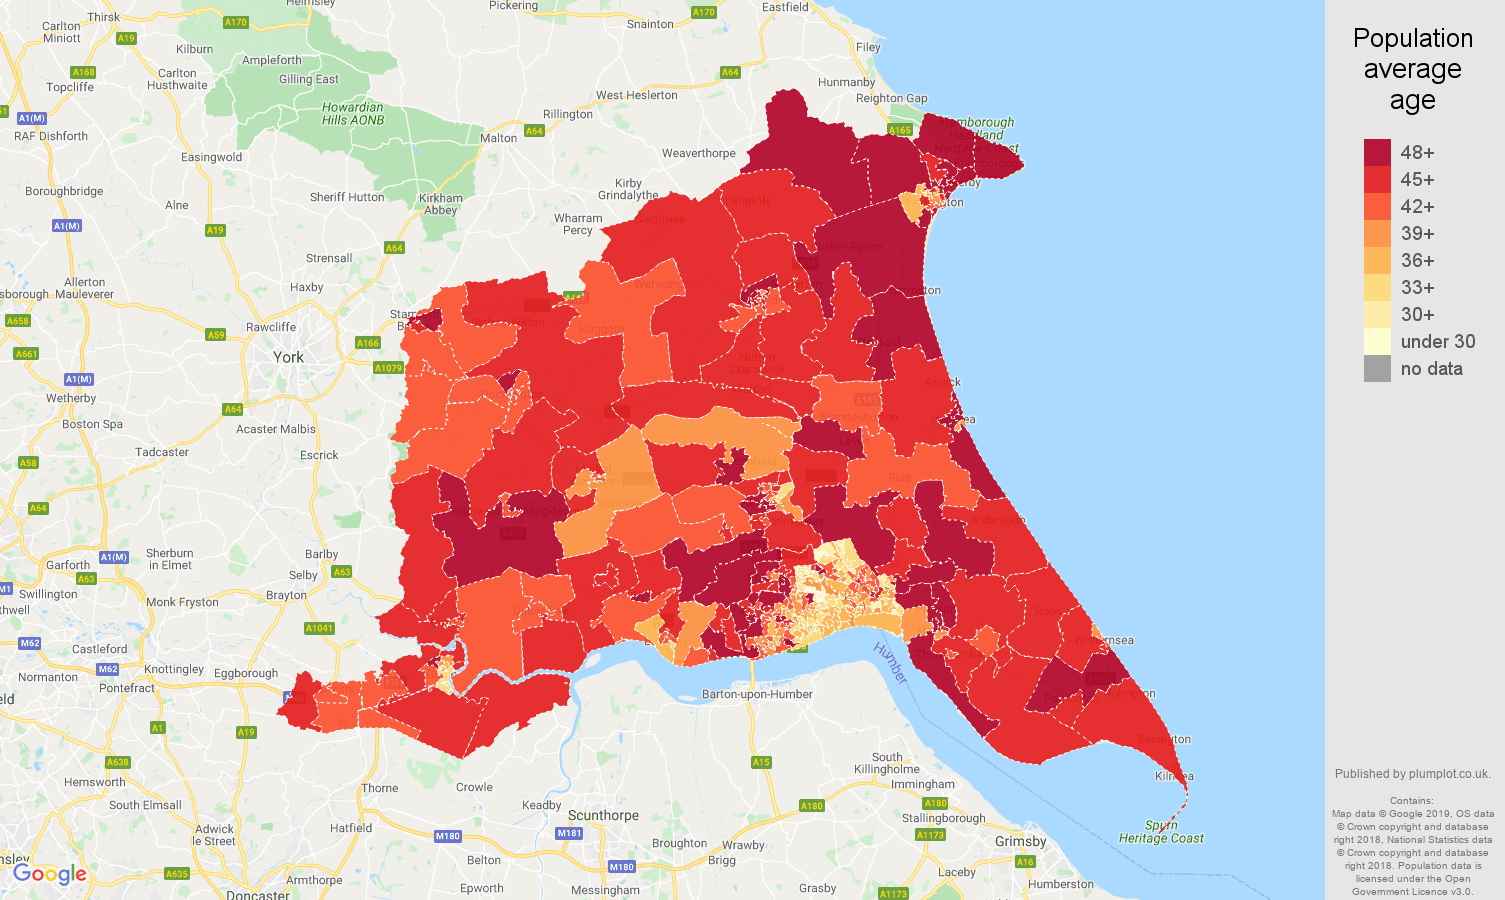 East Riding of Yorkshire population average age map